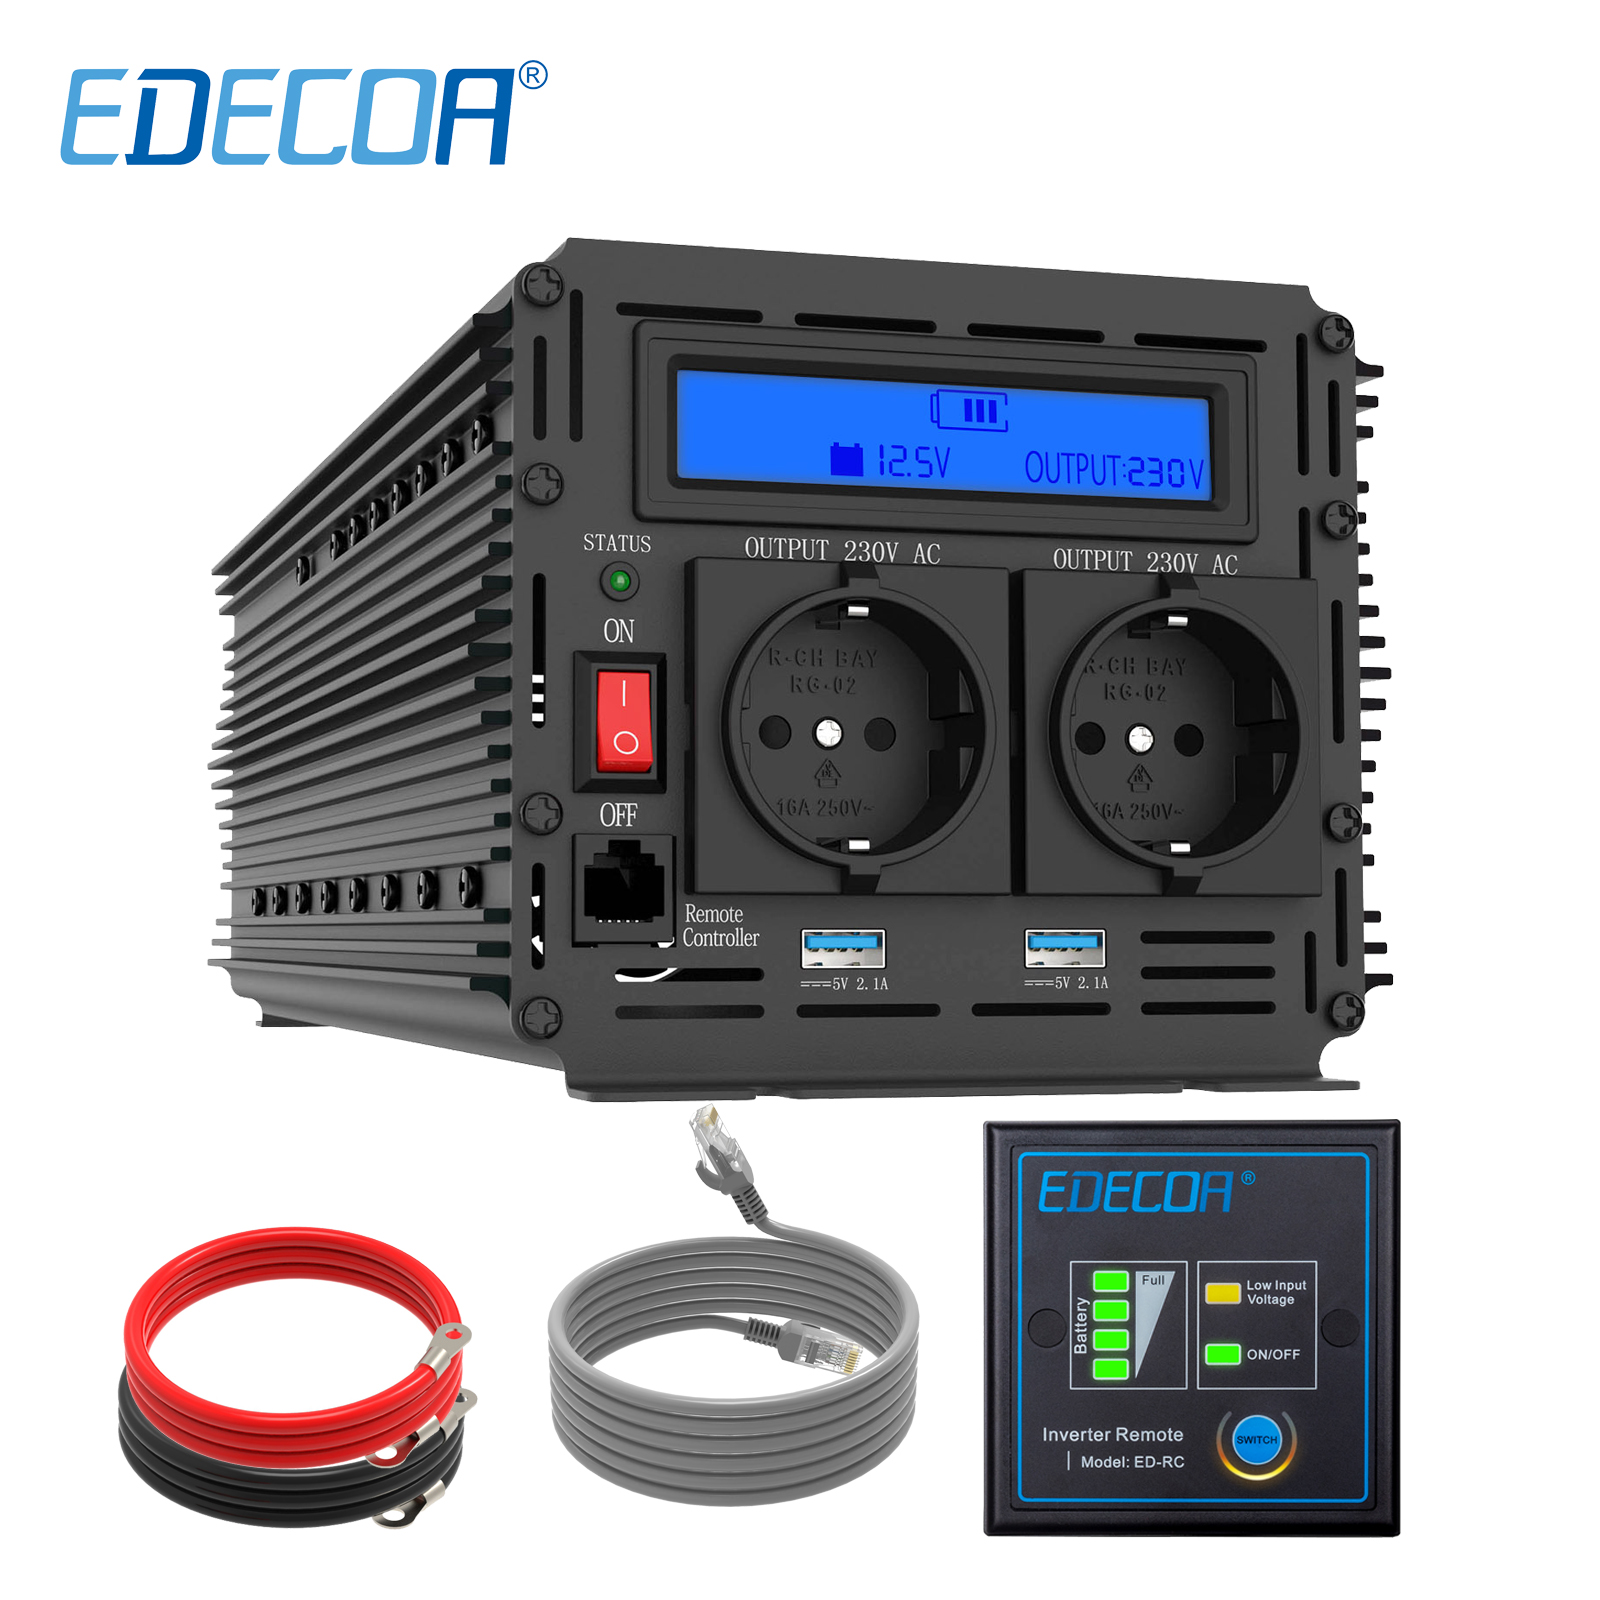 EDECOA power inverter 3000W 6000W modifizierte sinus welle <font><b>DC</b></font> 12V <font><b>AC</b></font> 220V <font><b>230V</b></font> mit fernbedienung controller und 5V 2.1A USB LCD display image